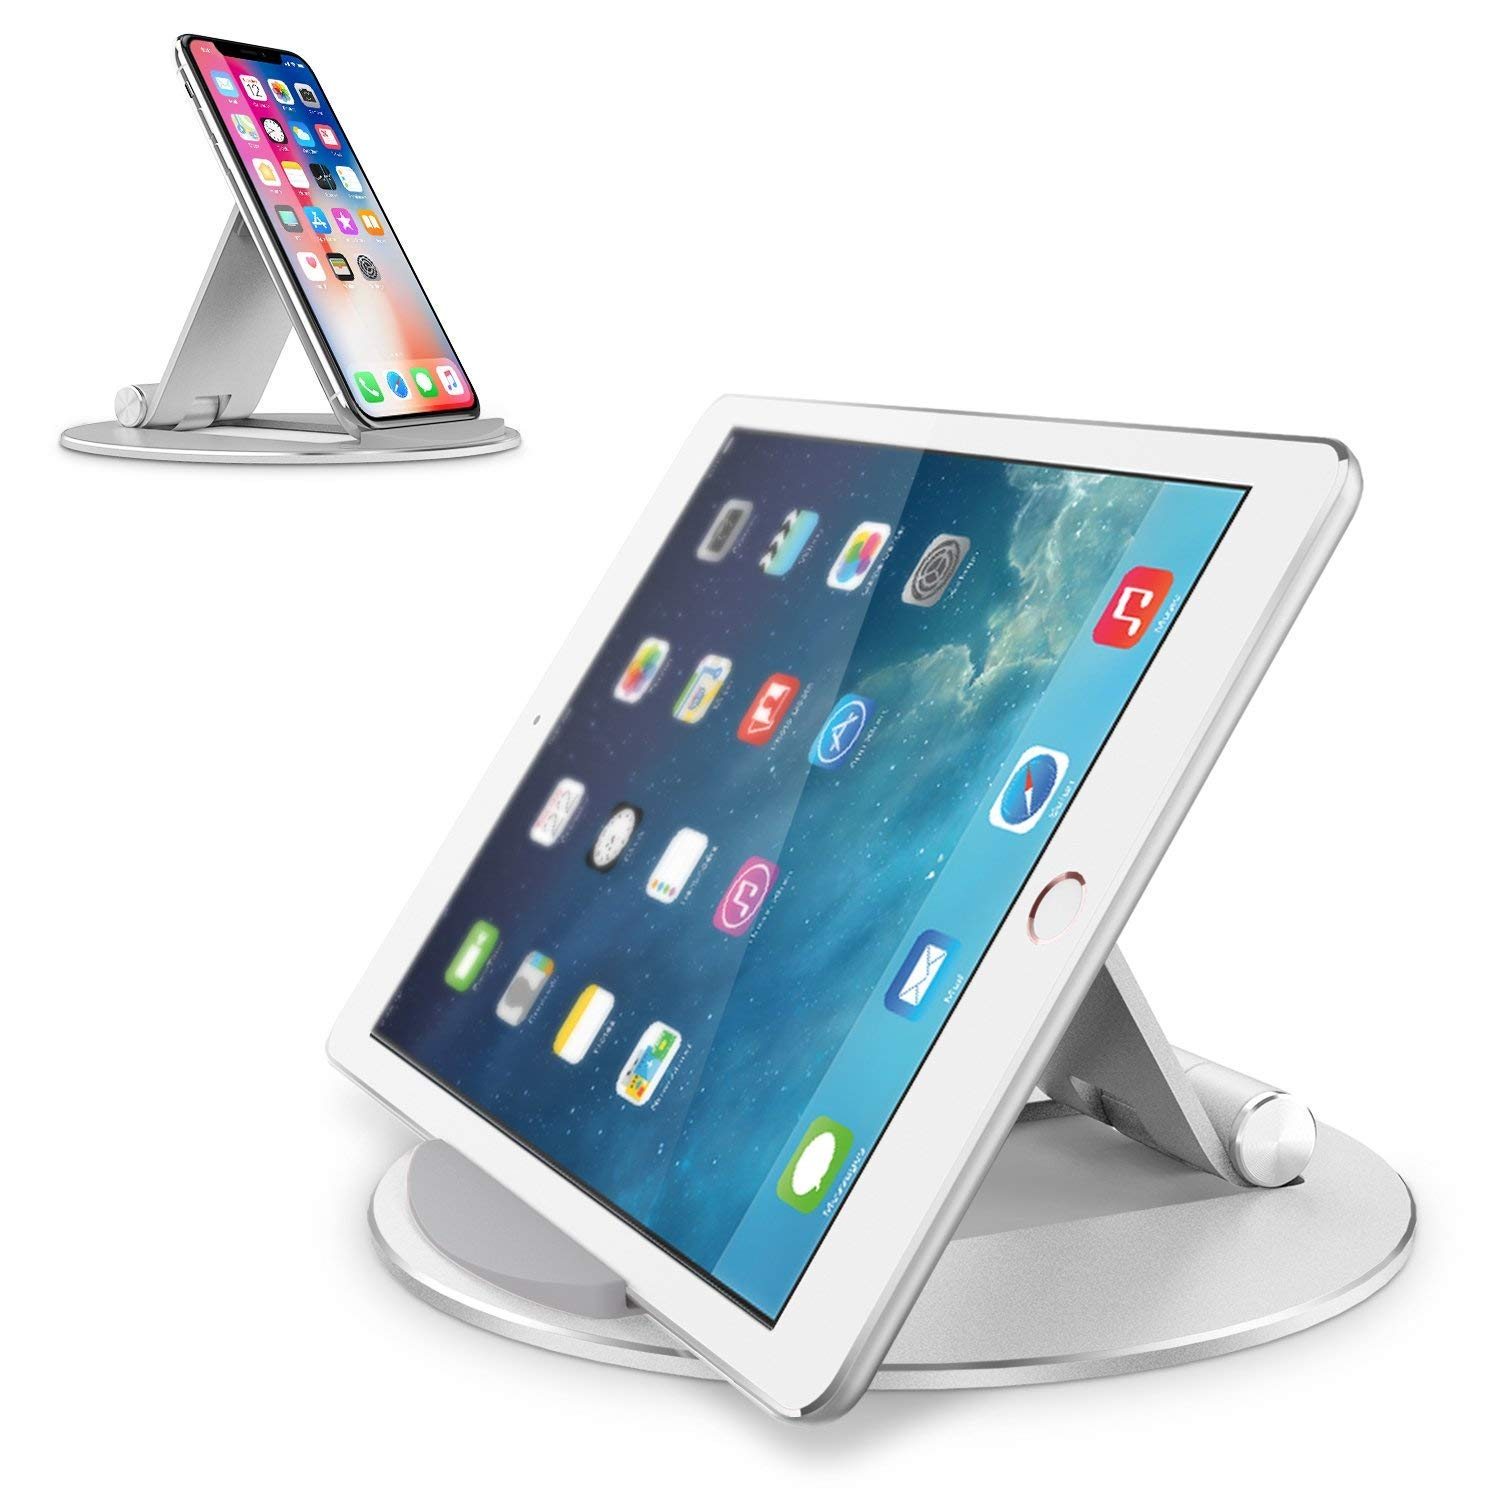 Adjustable Tablet Stand,CreaDream Aluminum Desktop Tablet Cellphone Stand with Anti-Slip Base, Portable Stand Holder for iPad Tablet, Samsung Tab, E-Reader and Cellphones, Silver